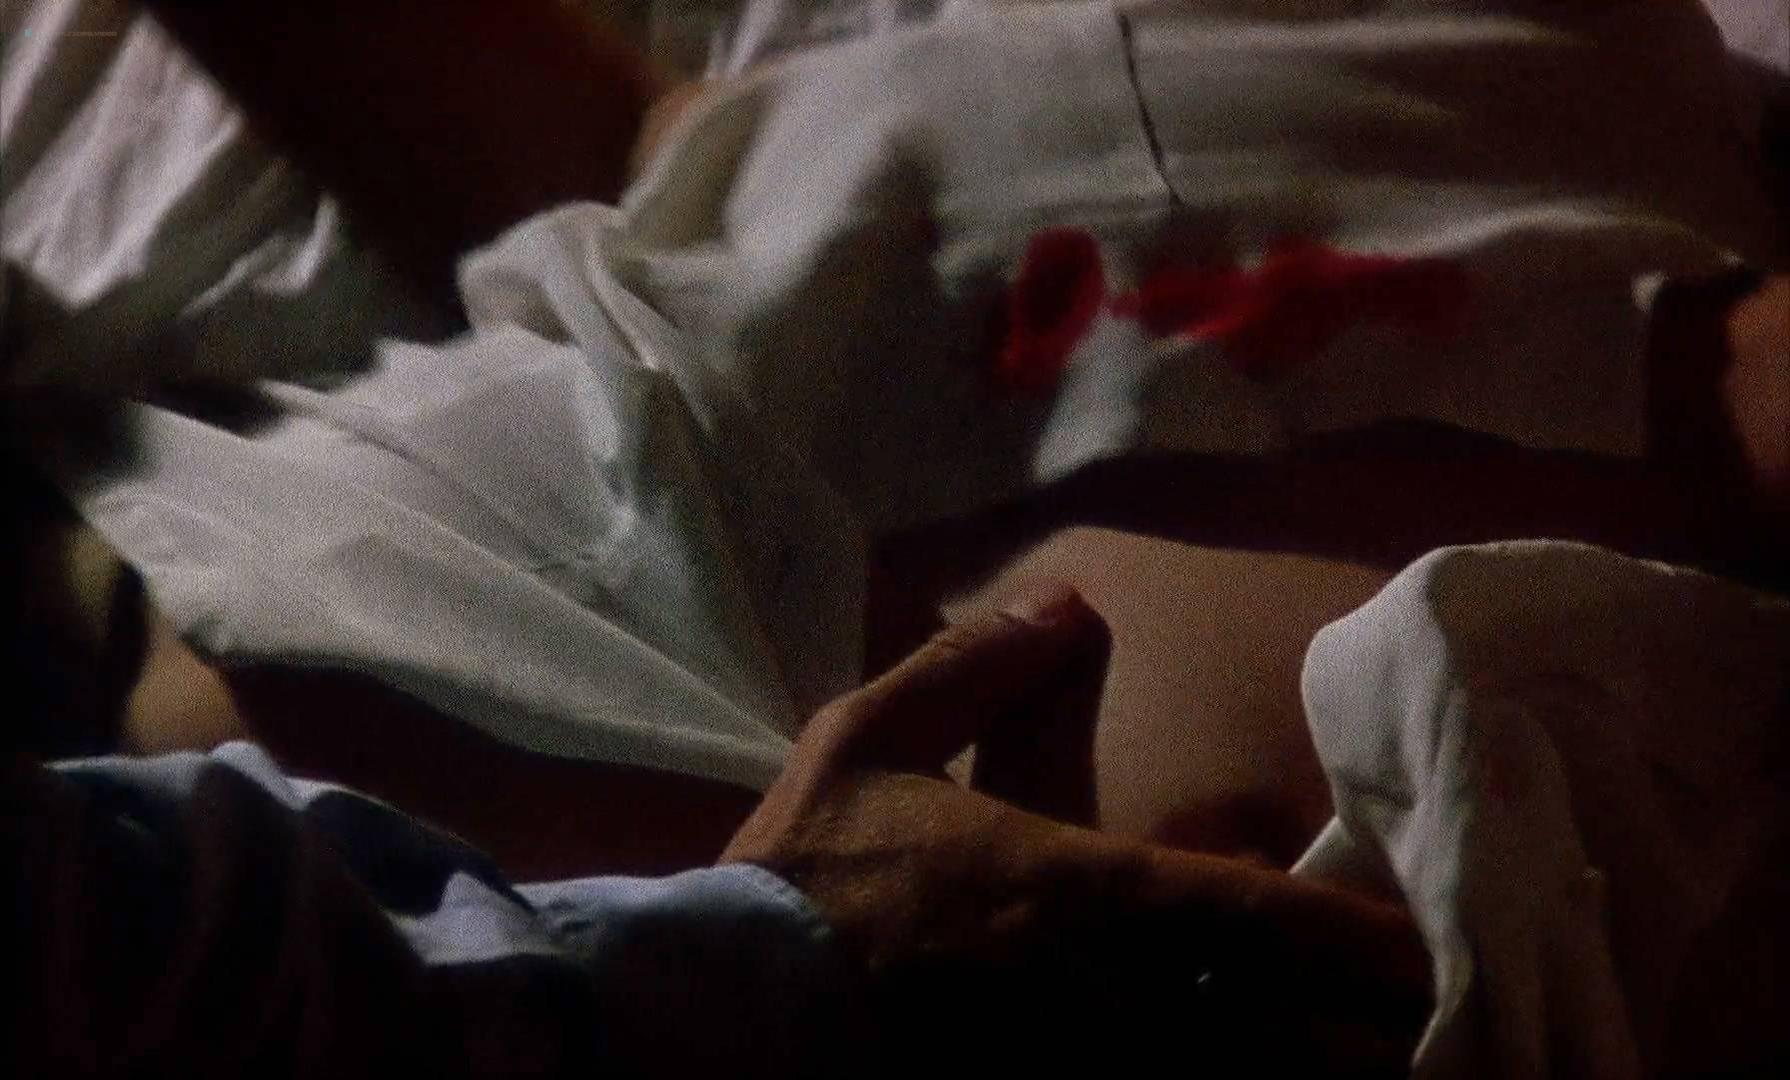 Asia Argento nude - The Stendhal Syndrome (1996)